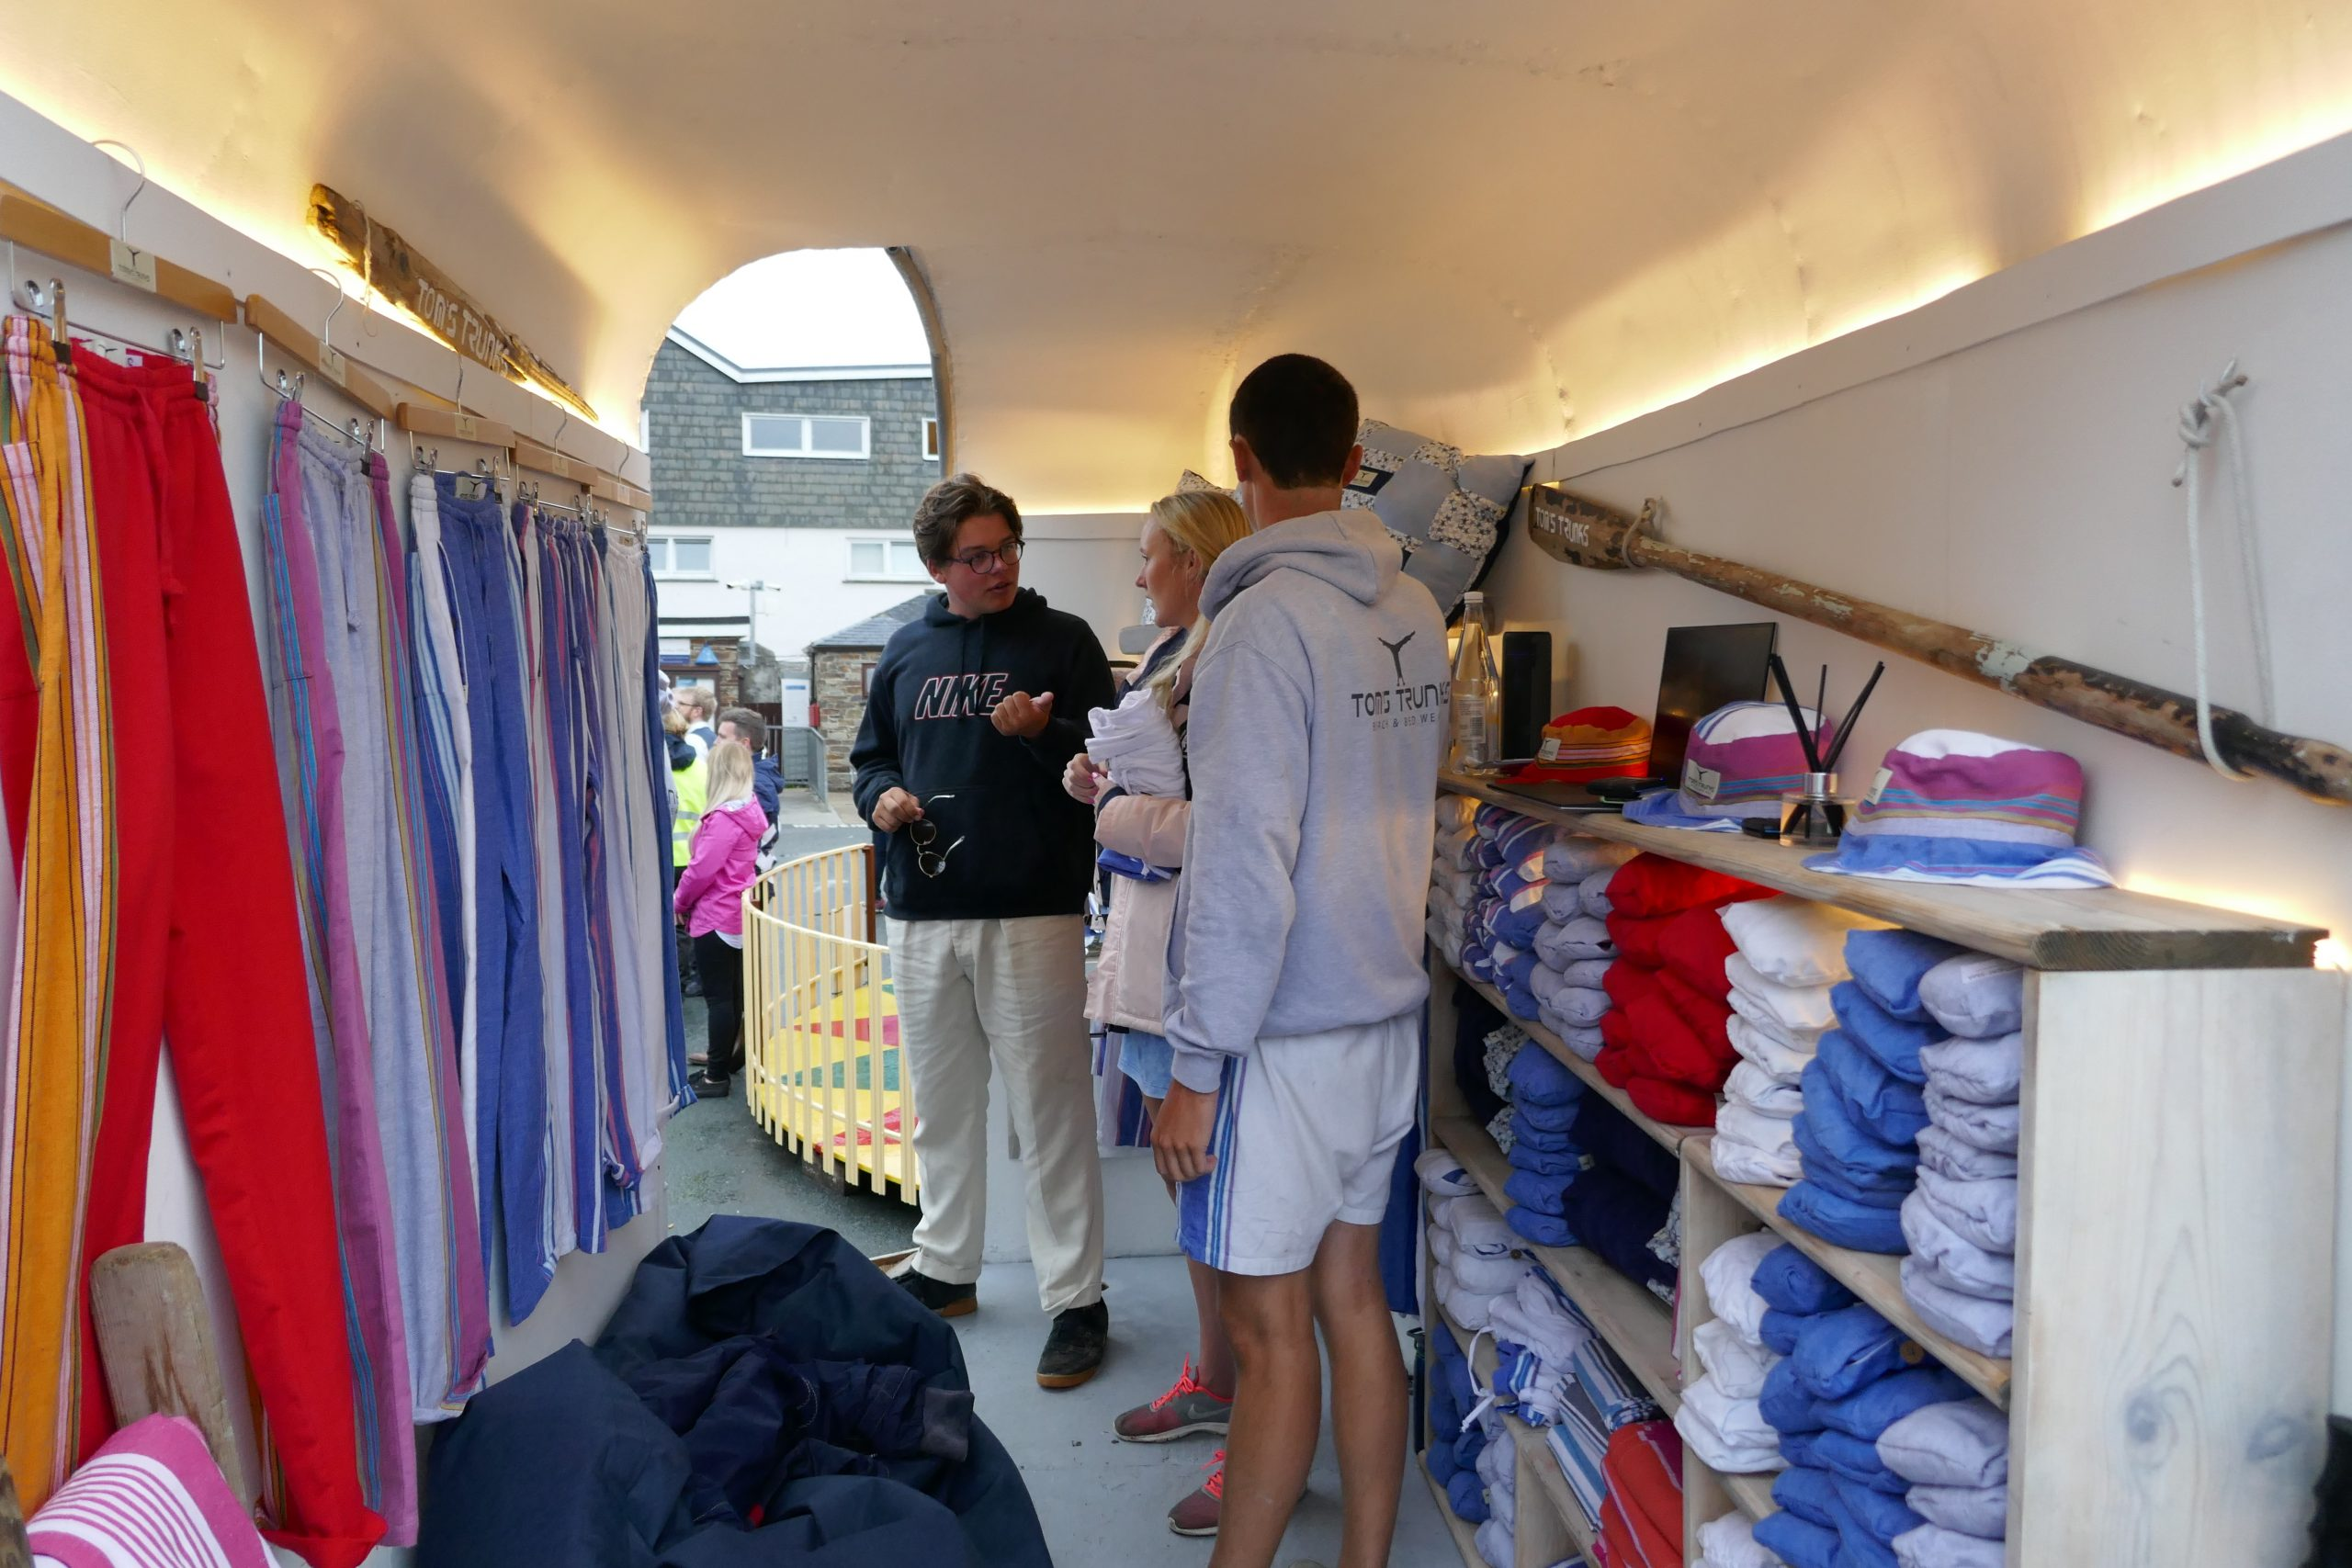 Two men and a woman inside a trailer full of colorful kikoy yoga pants and eco-friendly hats and clothing